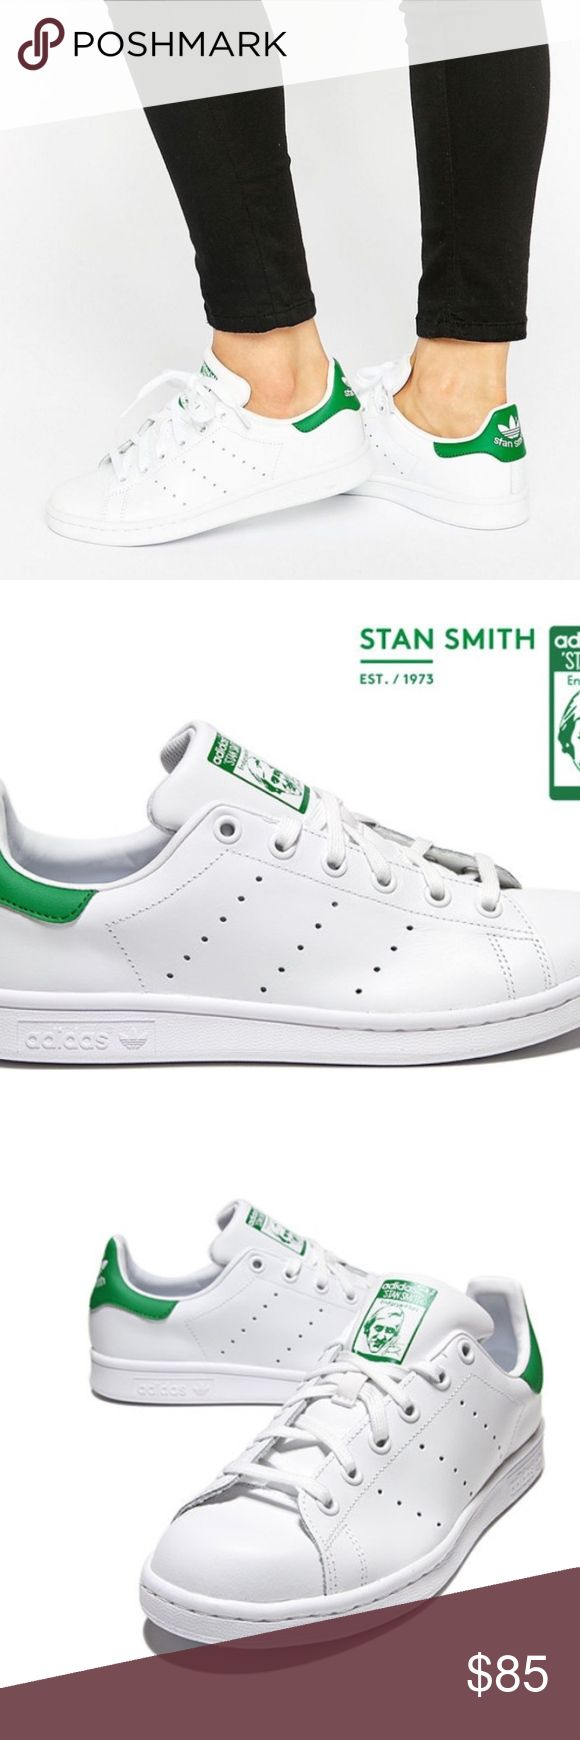 BRAND NEW Women's Stan Smith Adidas Size 6.5 Never worn before, New In Box, Women's green Stan Smith Adidas Size 6.5 Adidas Shoes Athletic Shoes